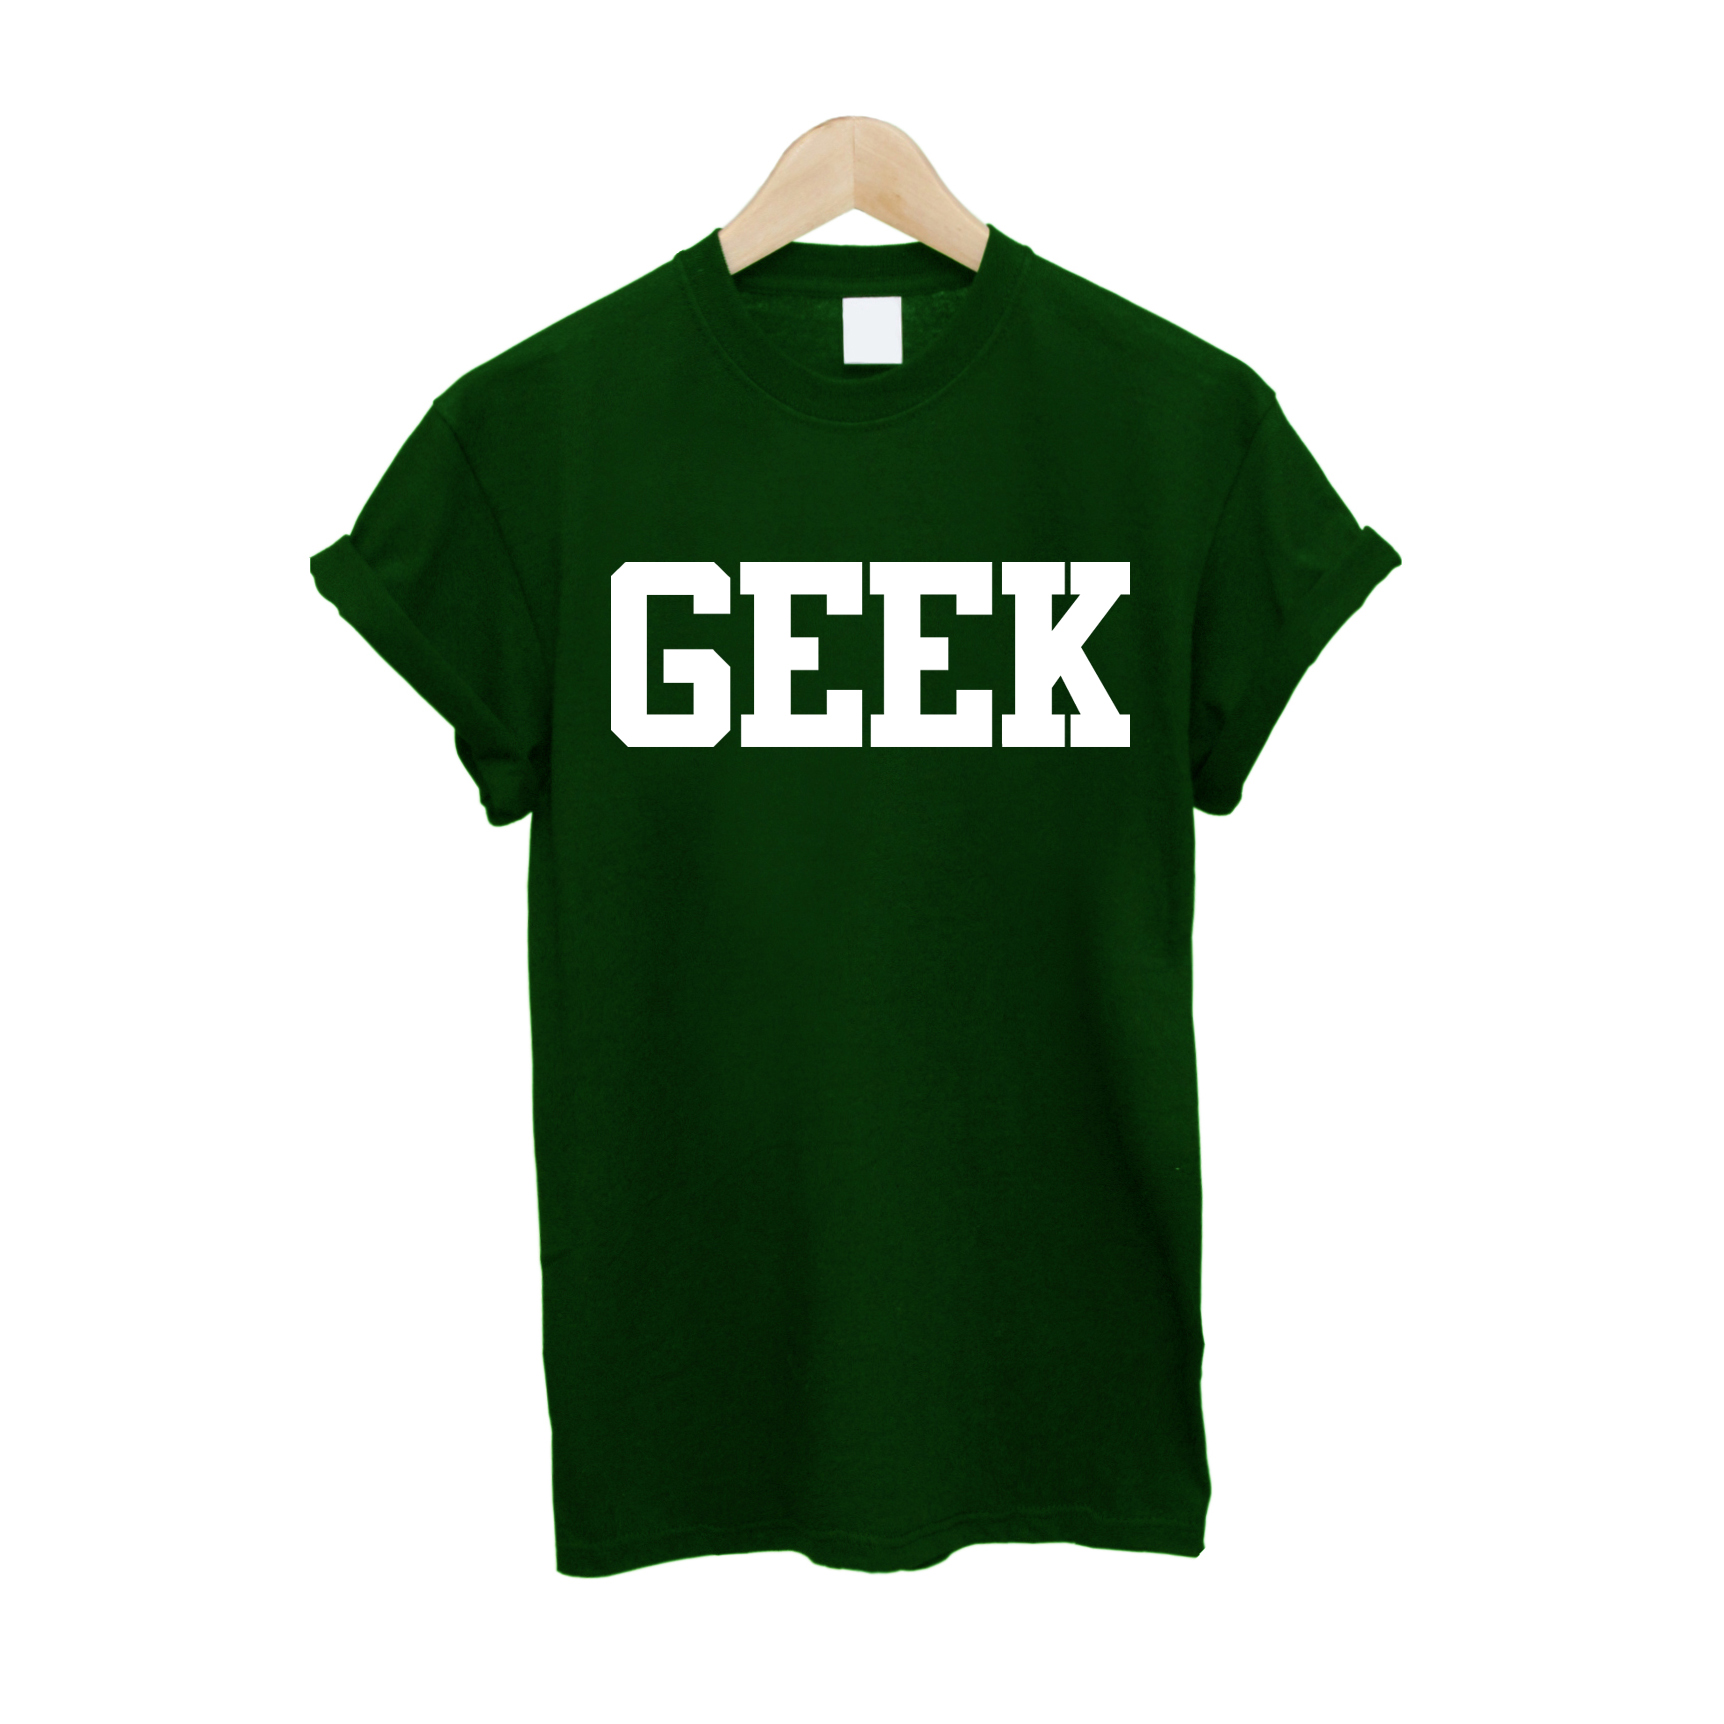 Geek T Shirt £10   Free UK Delivery   10% OFF